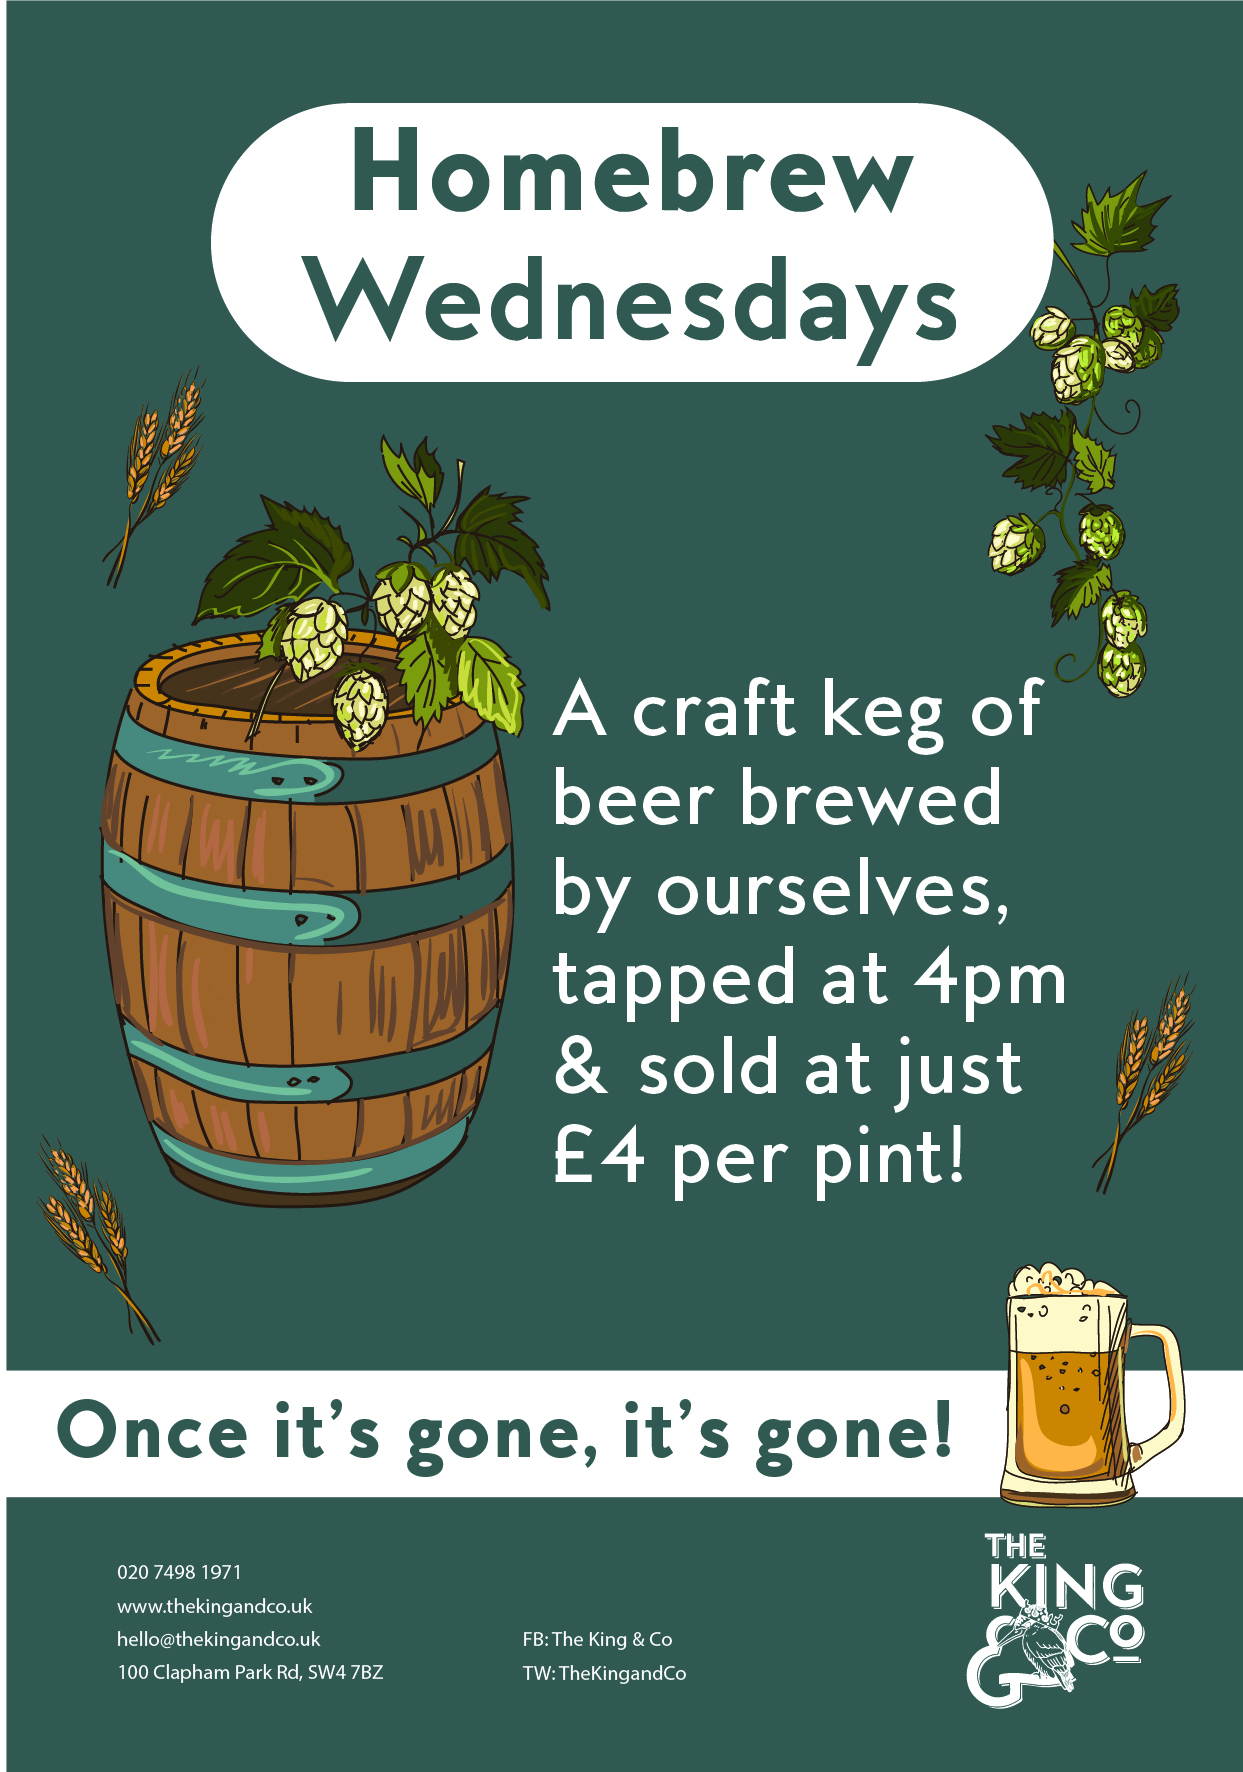 Homebrew Wednesdays